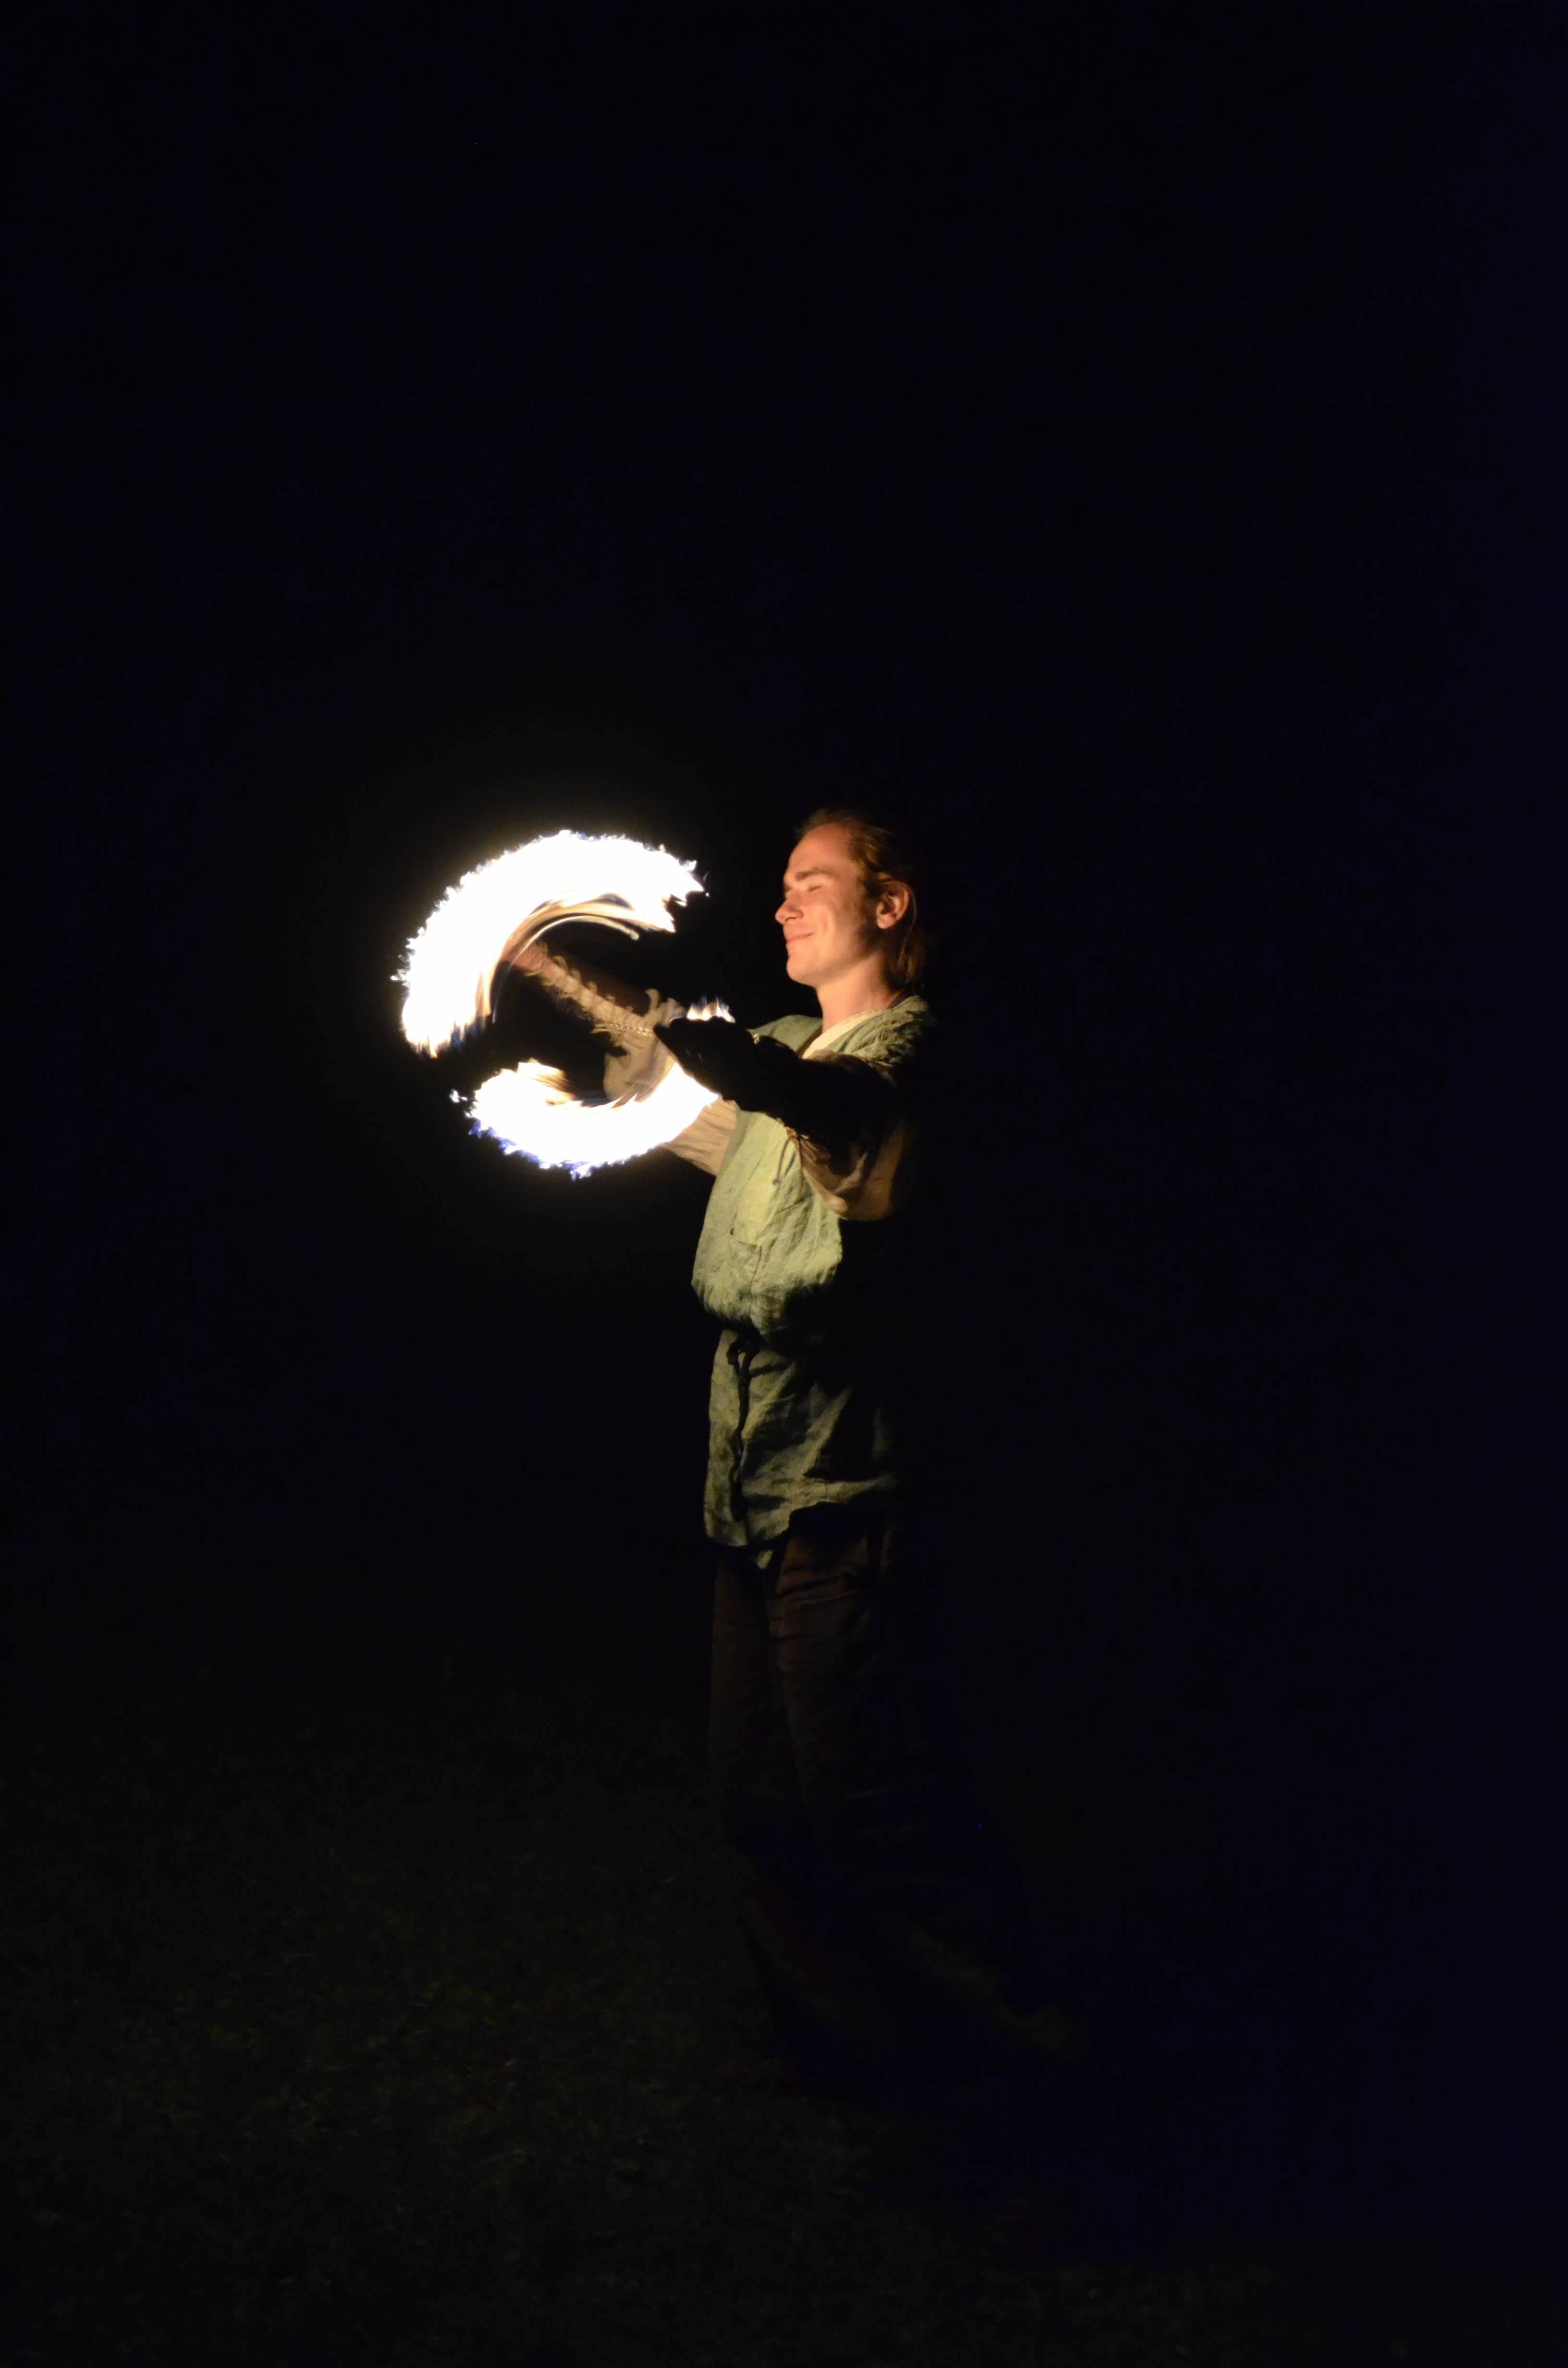 Man Standing While Playing With Fire At Night